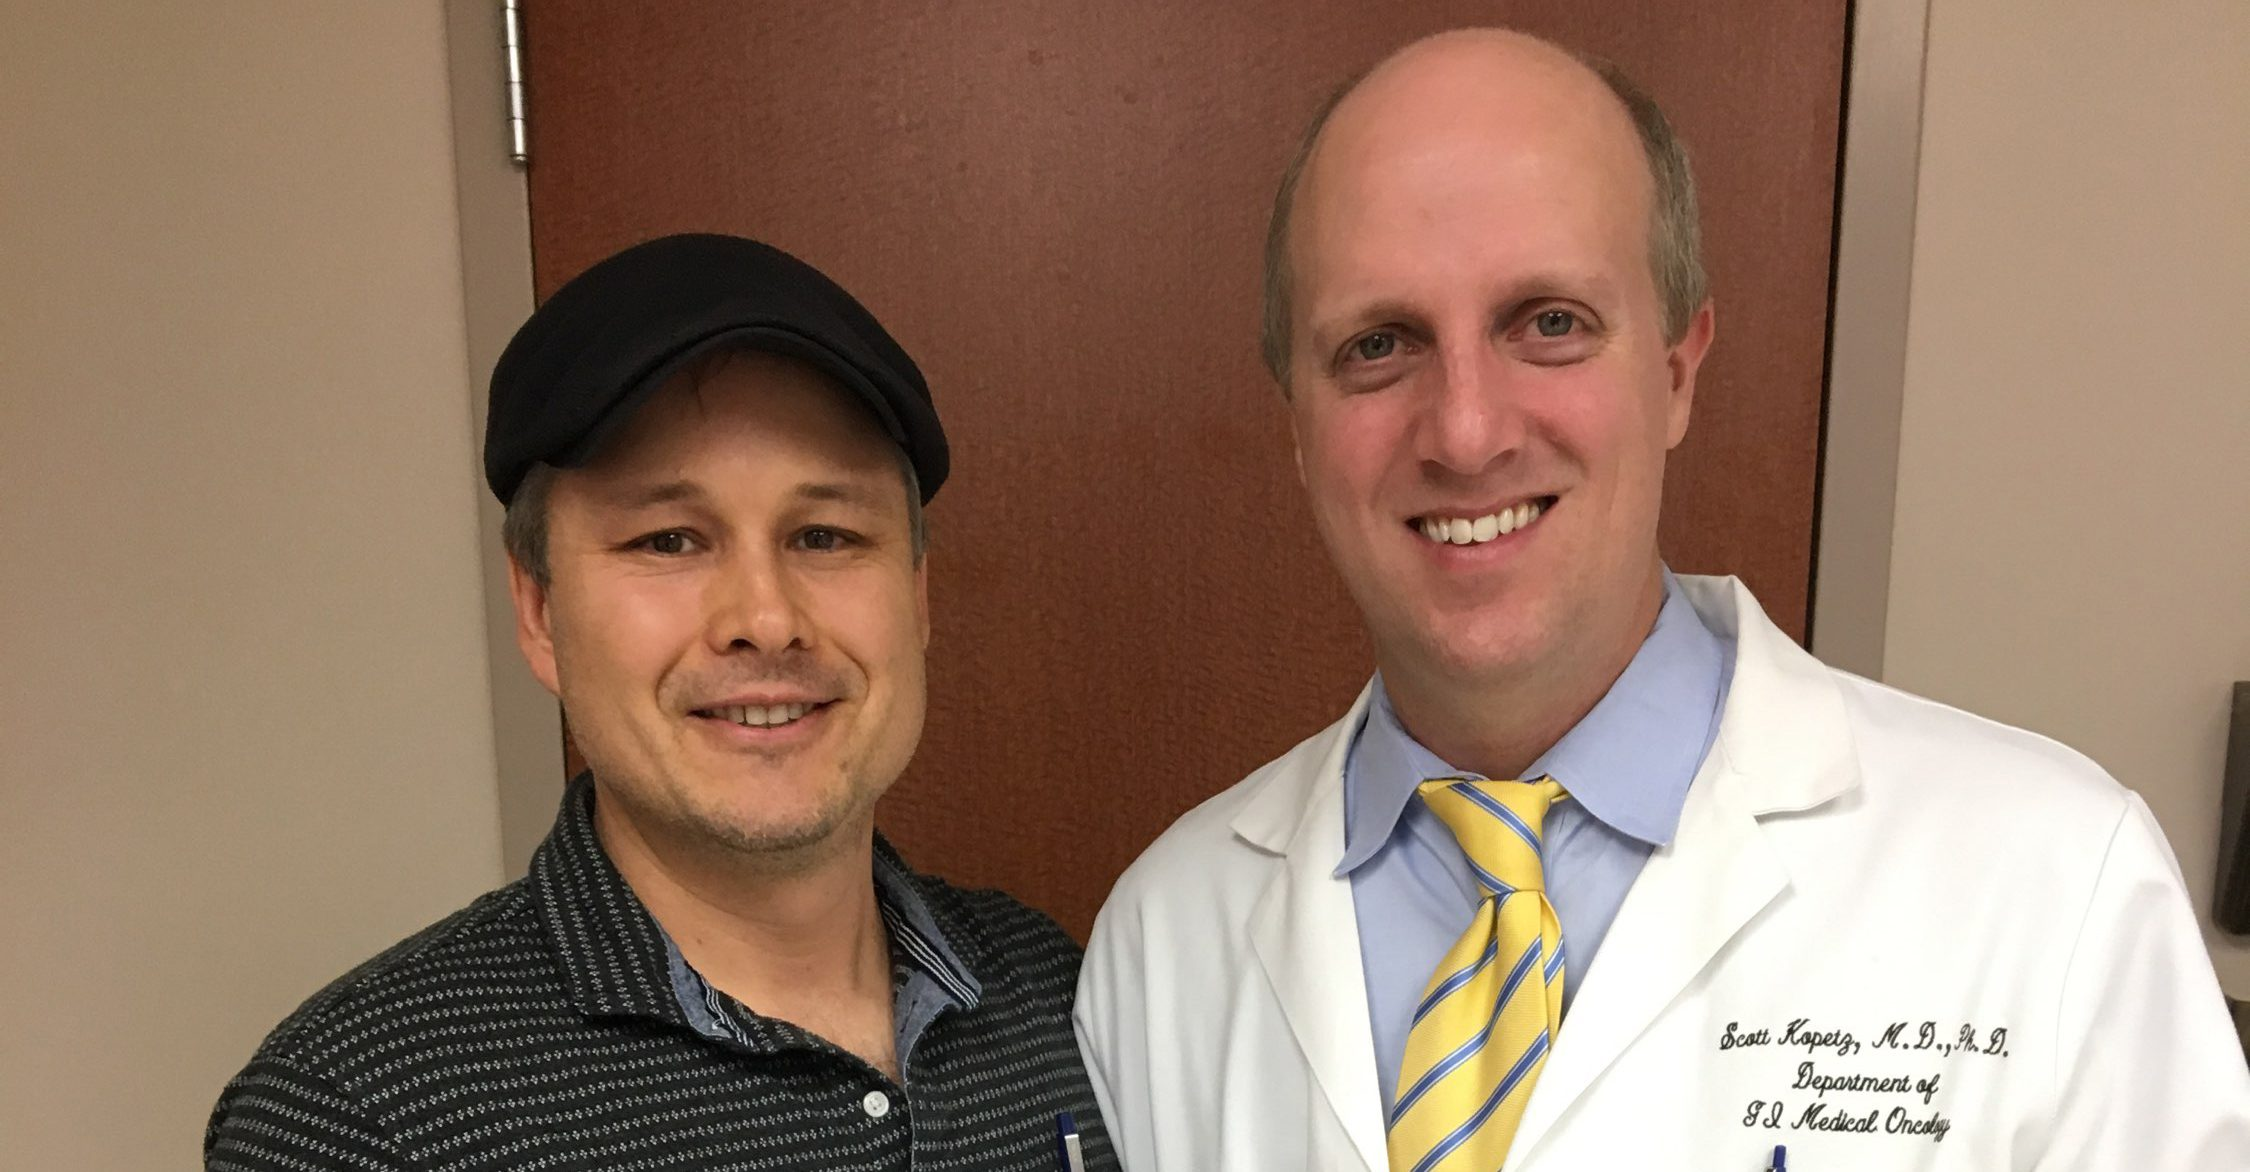 Colorectal cancer survvior Dr. Anatole Karpovs (left) with Dr. Scott Kopetz